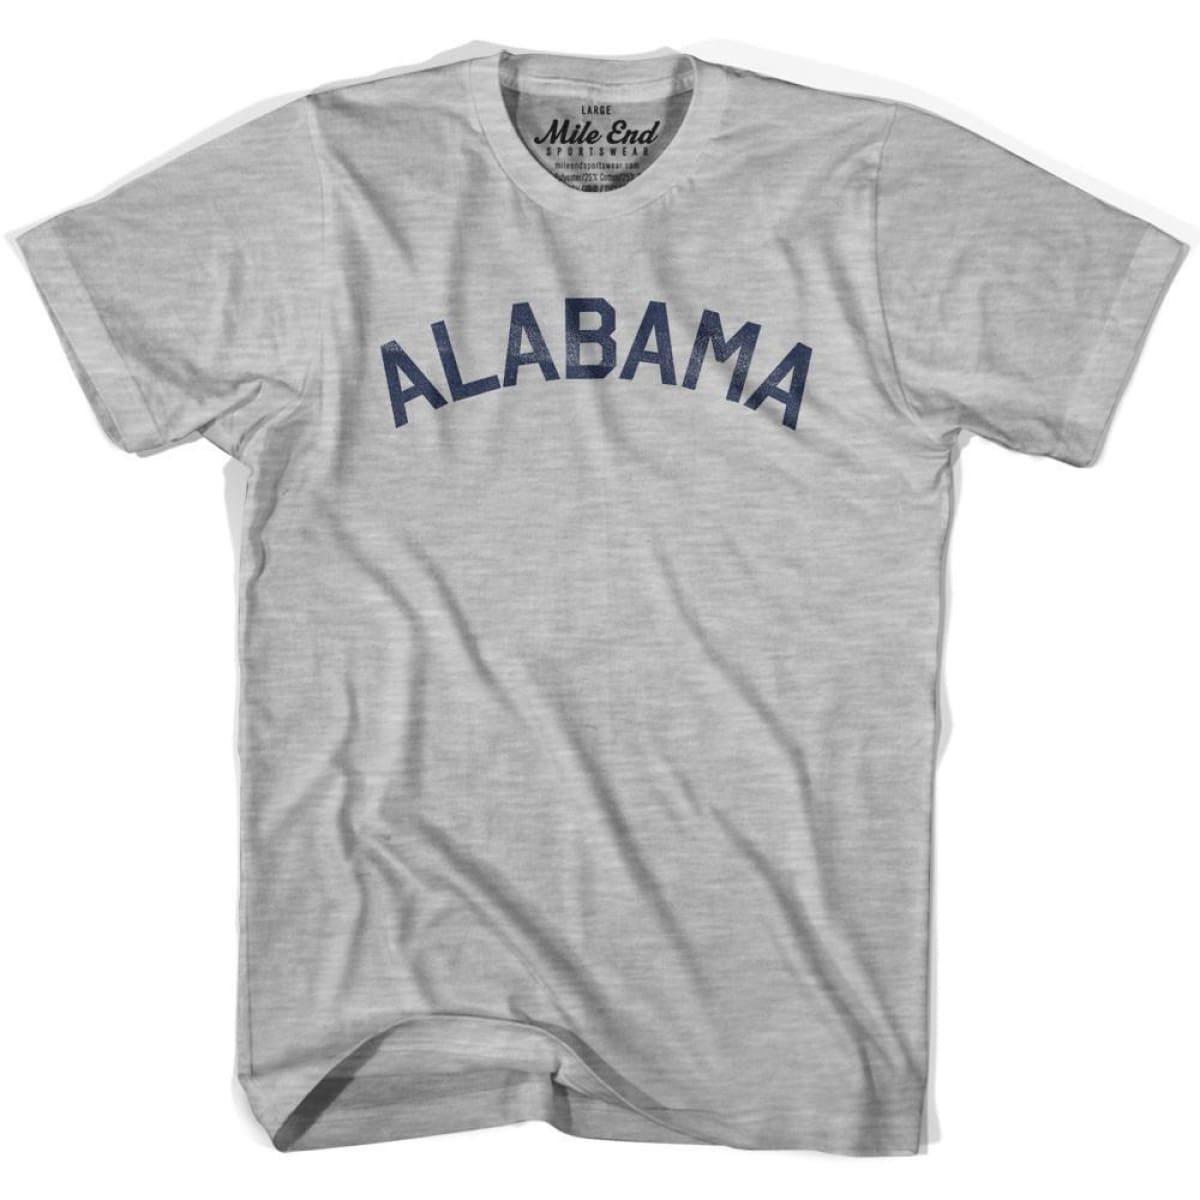 Alabama Union Vintage T-shirt - Grey Heather / Youth X-Small - Mile End City